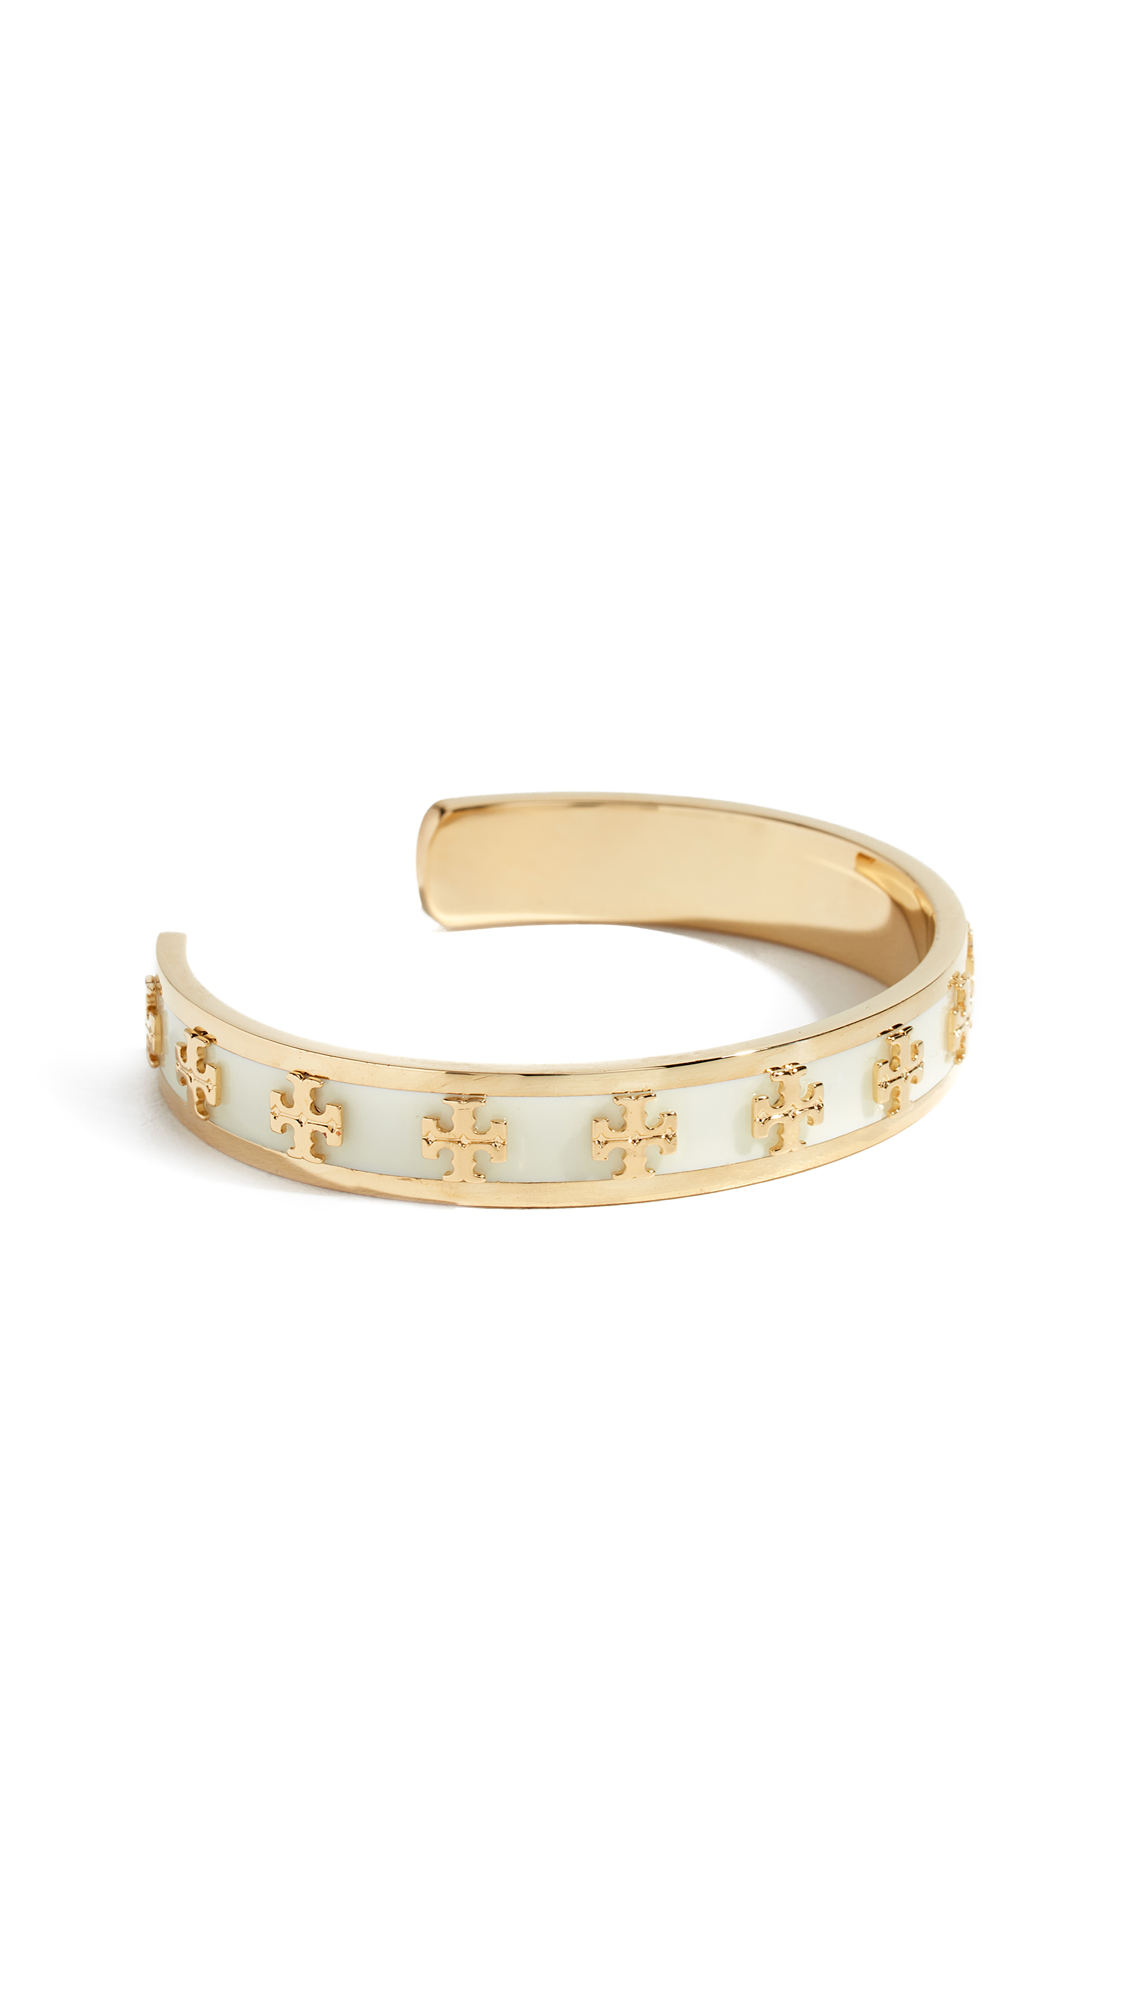 Tory Burch Enamel Raised Logo Cuff Bracelet - New Ivory/Tory Gold